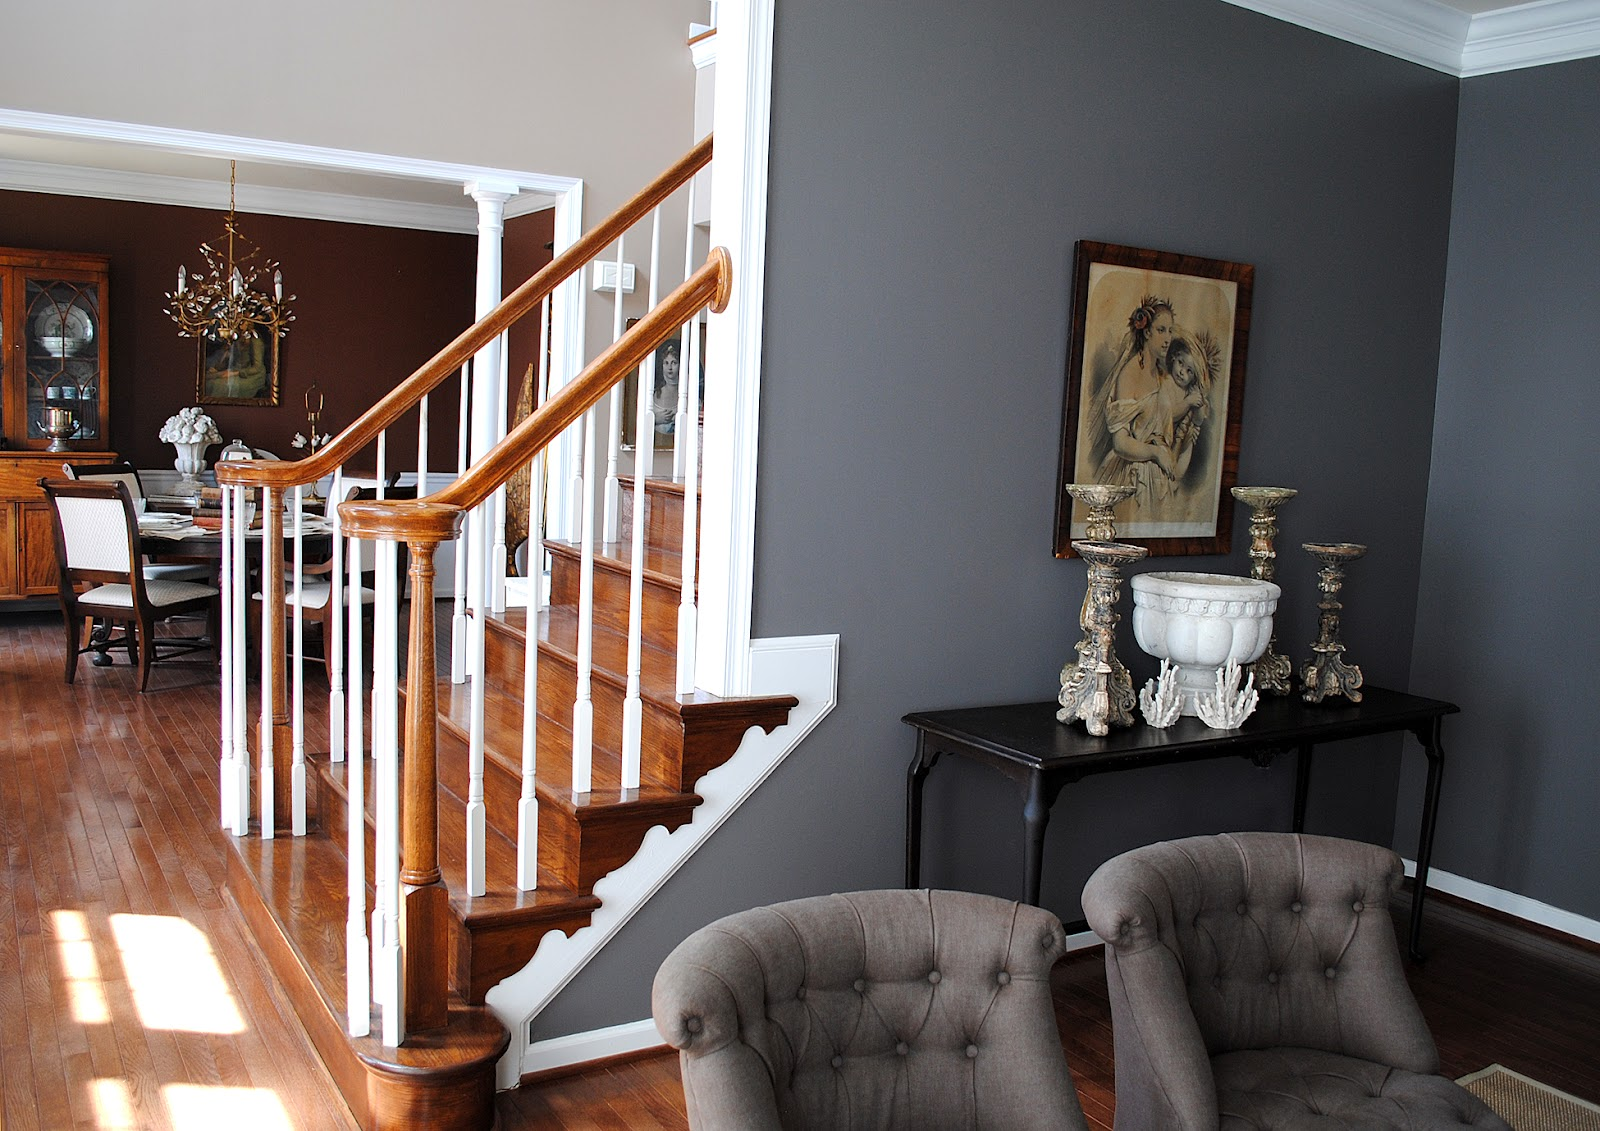 Picturesque My Living Room Big Graphics Fairy Sherwin Williams Gauntlet Grey Cabinets Sherwin Williams Gauntlet Reviews houzz-02 Sherwin Williams Gauntlet Gray